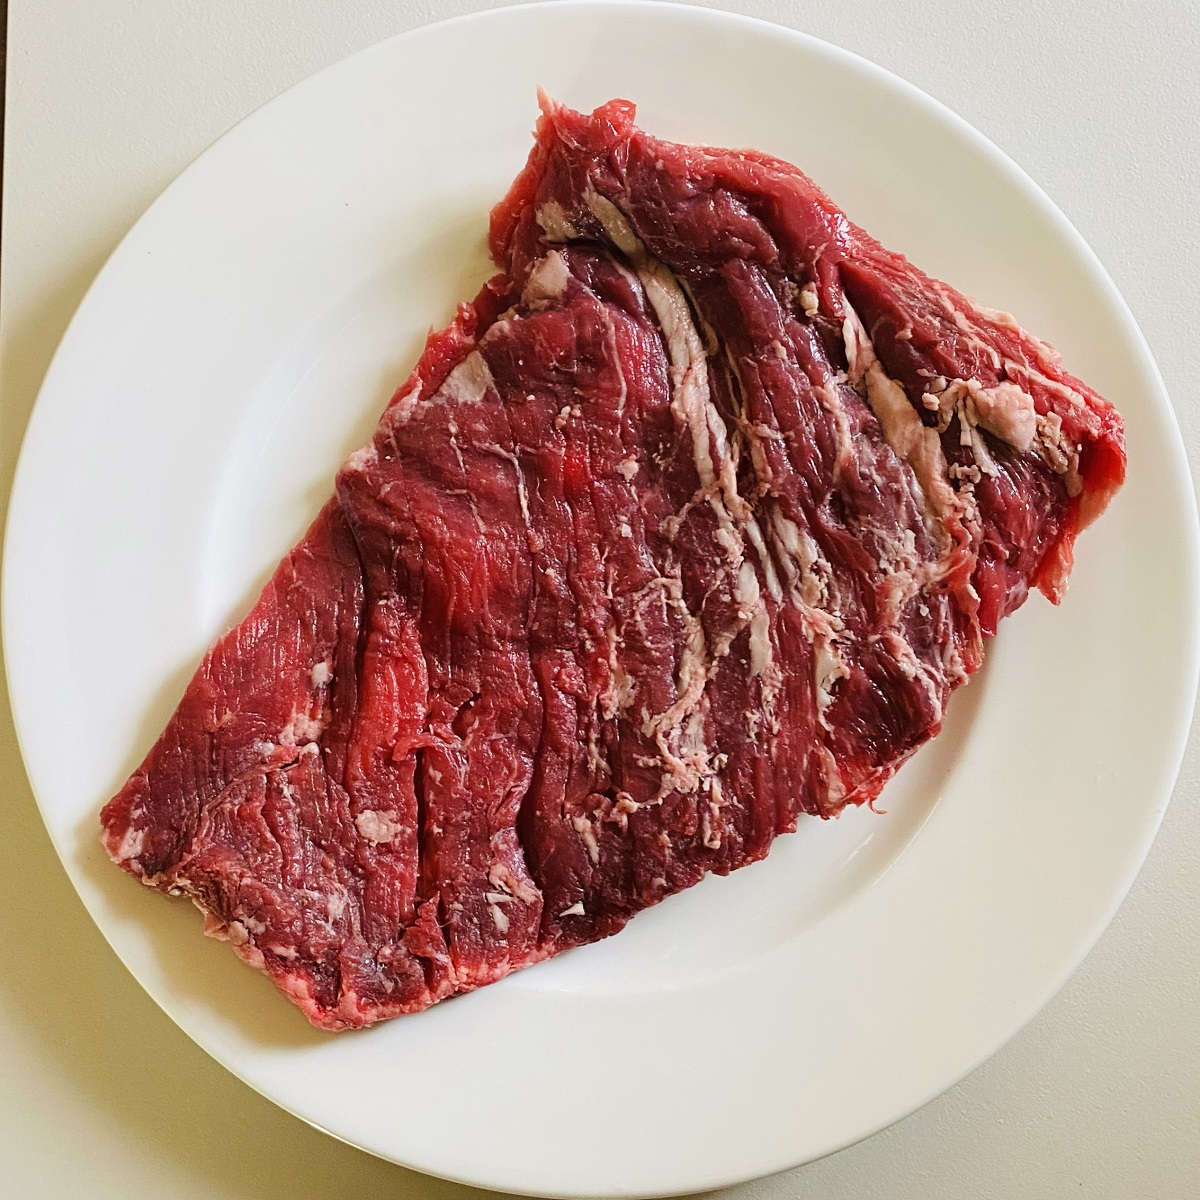 bavette steak cut raw on a white plate